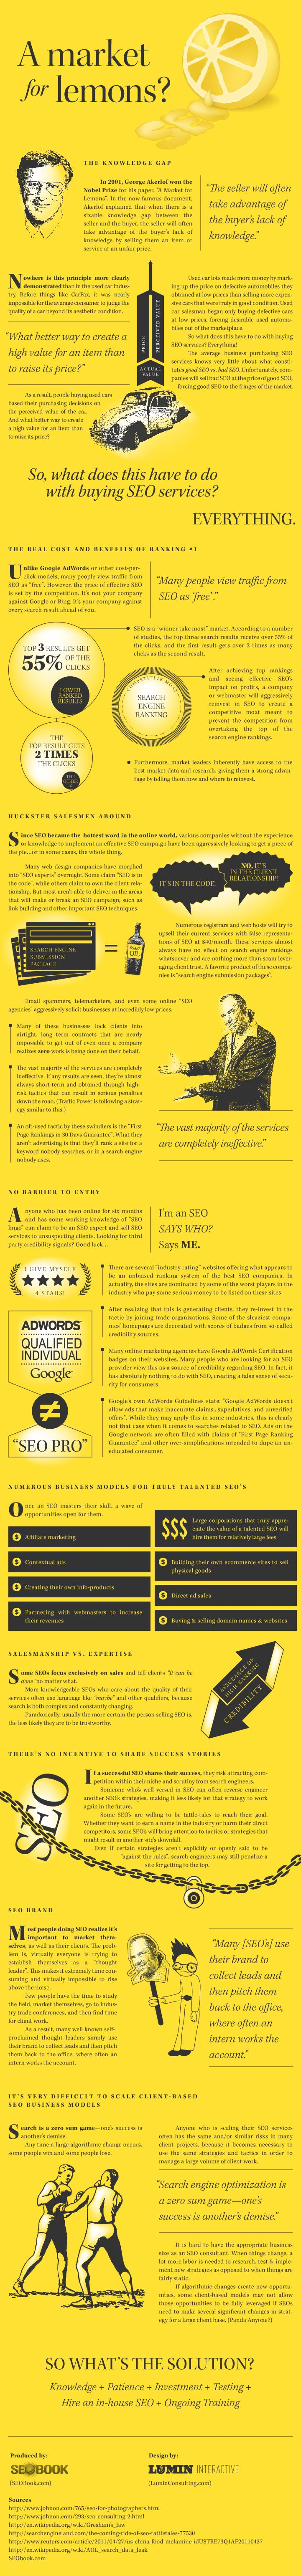 We've been doing SEO work since 1996 and LOVE this article/infographic.  And we agree -- if it is done right, and you have someone who is trained (and keeps up with best practices) you can dominate the search engines for a long, long time!